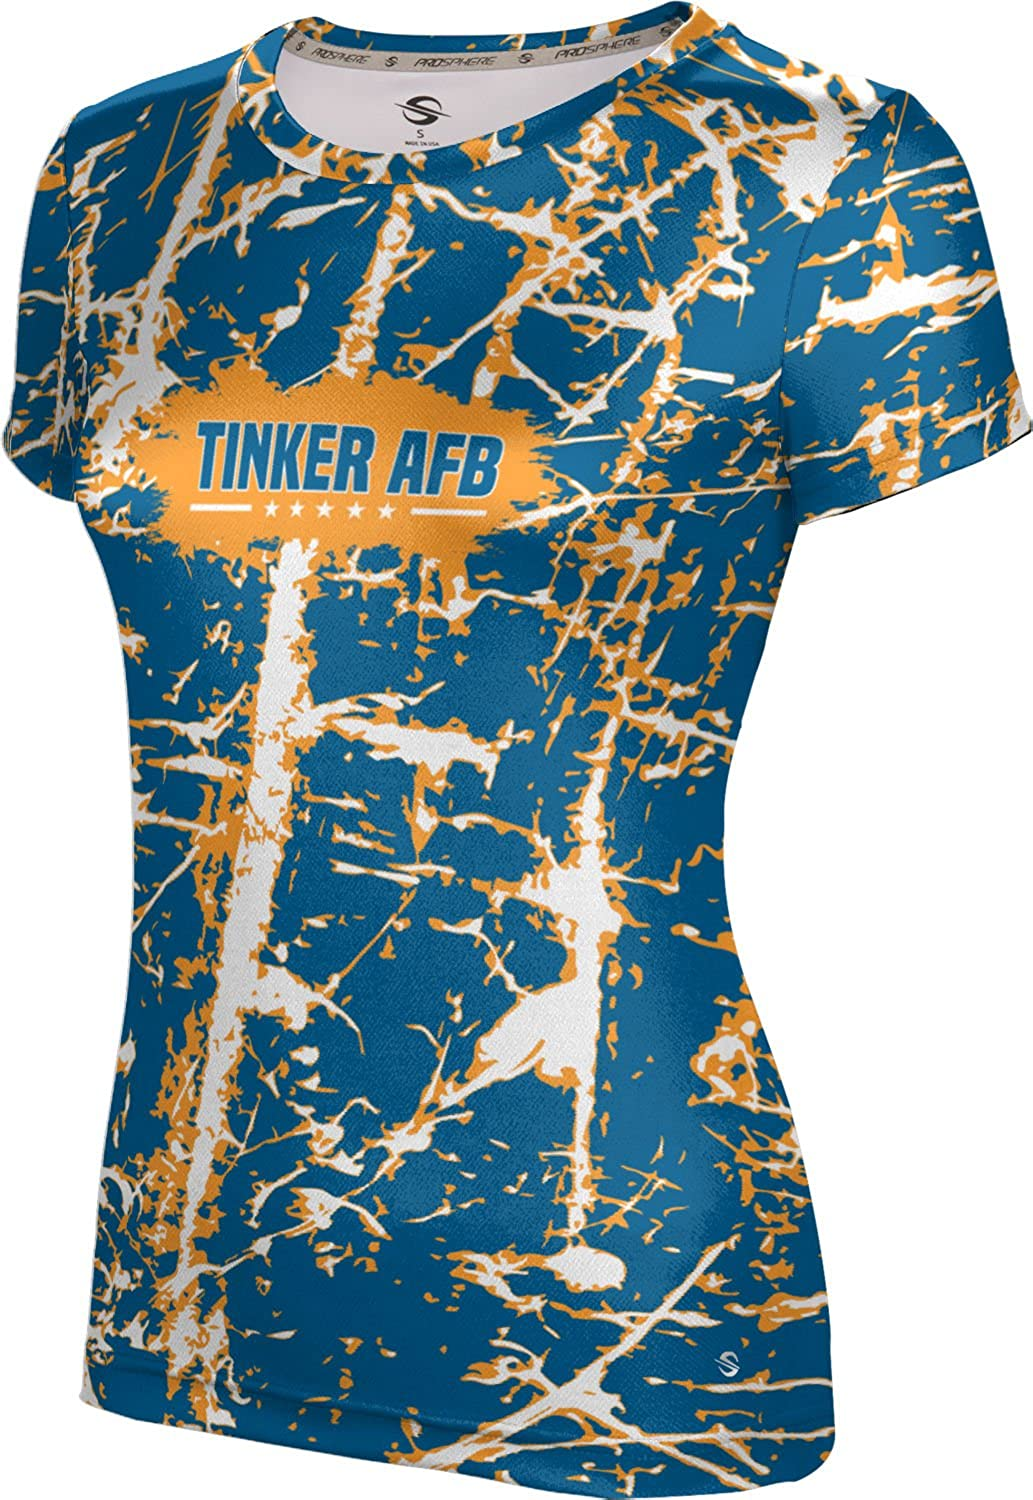 ProSphere Women's Tinker AFB Military Distressed Tech Tee